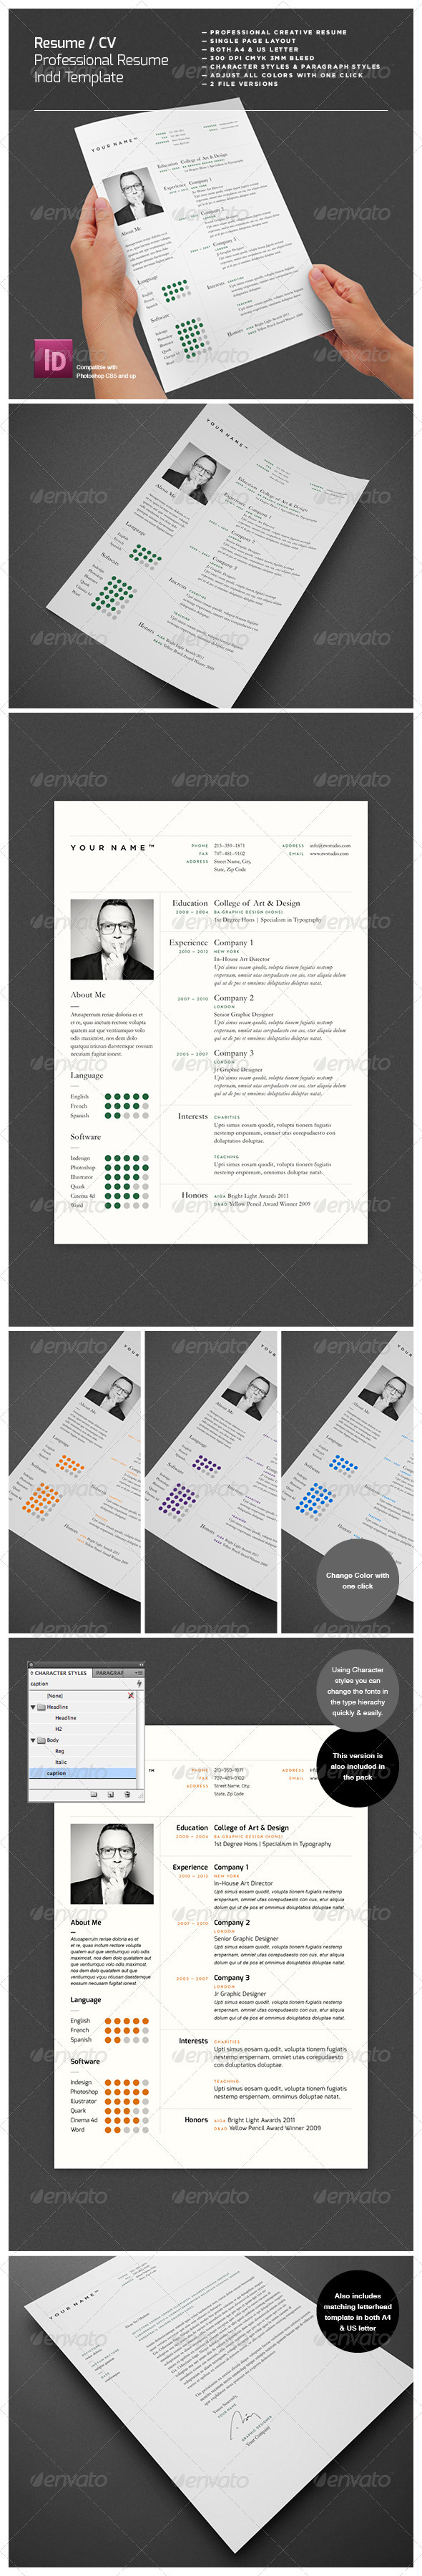 GraphicRiver Professional Resume 3781812